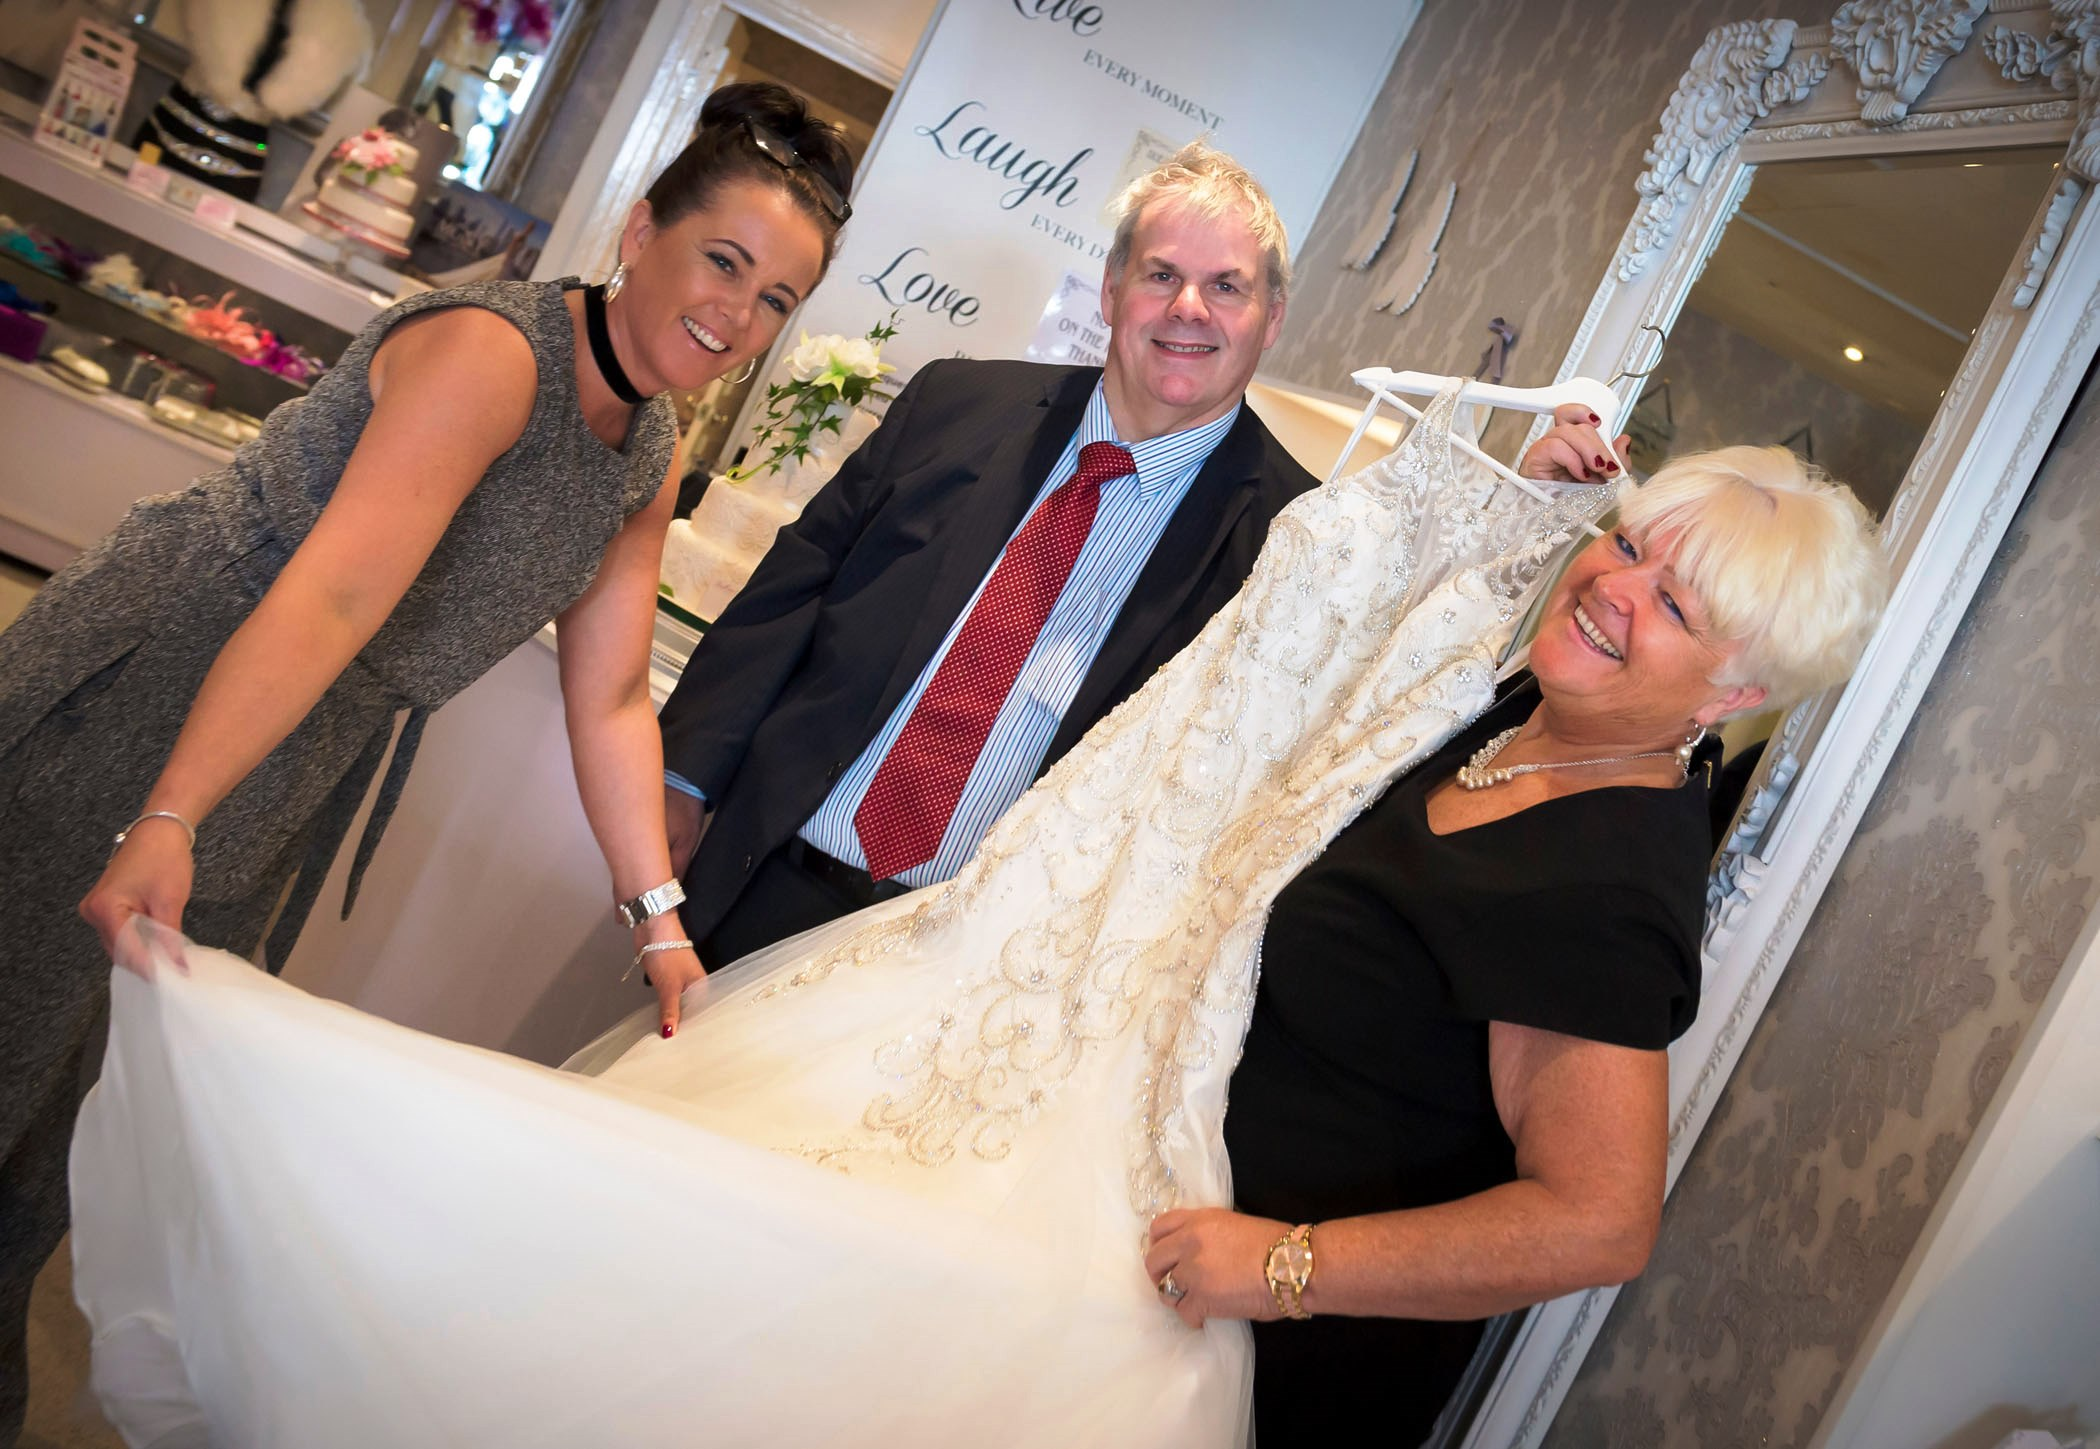 Heywood bridal boutique says 'I do' to council's business rates sale